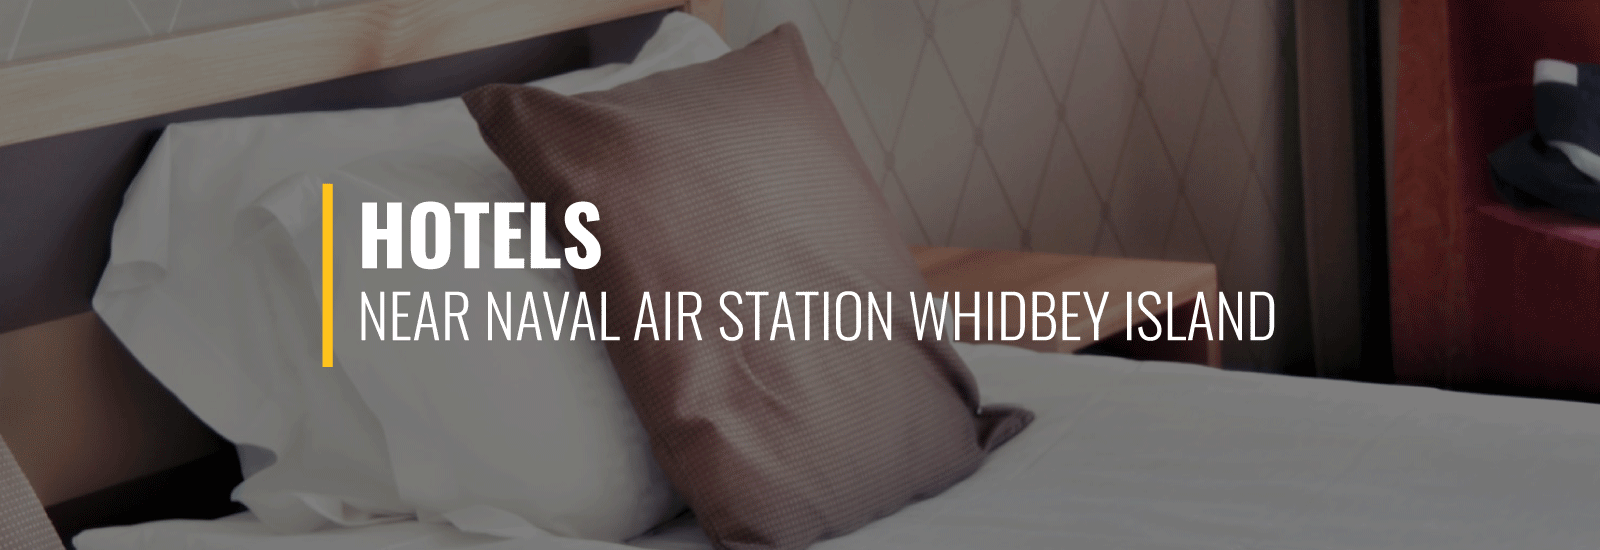 NAS Whidbey Hotels